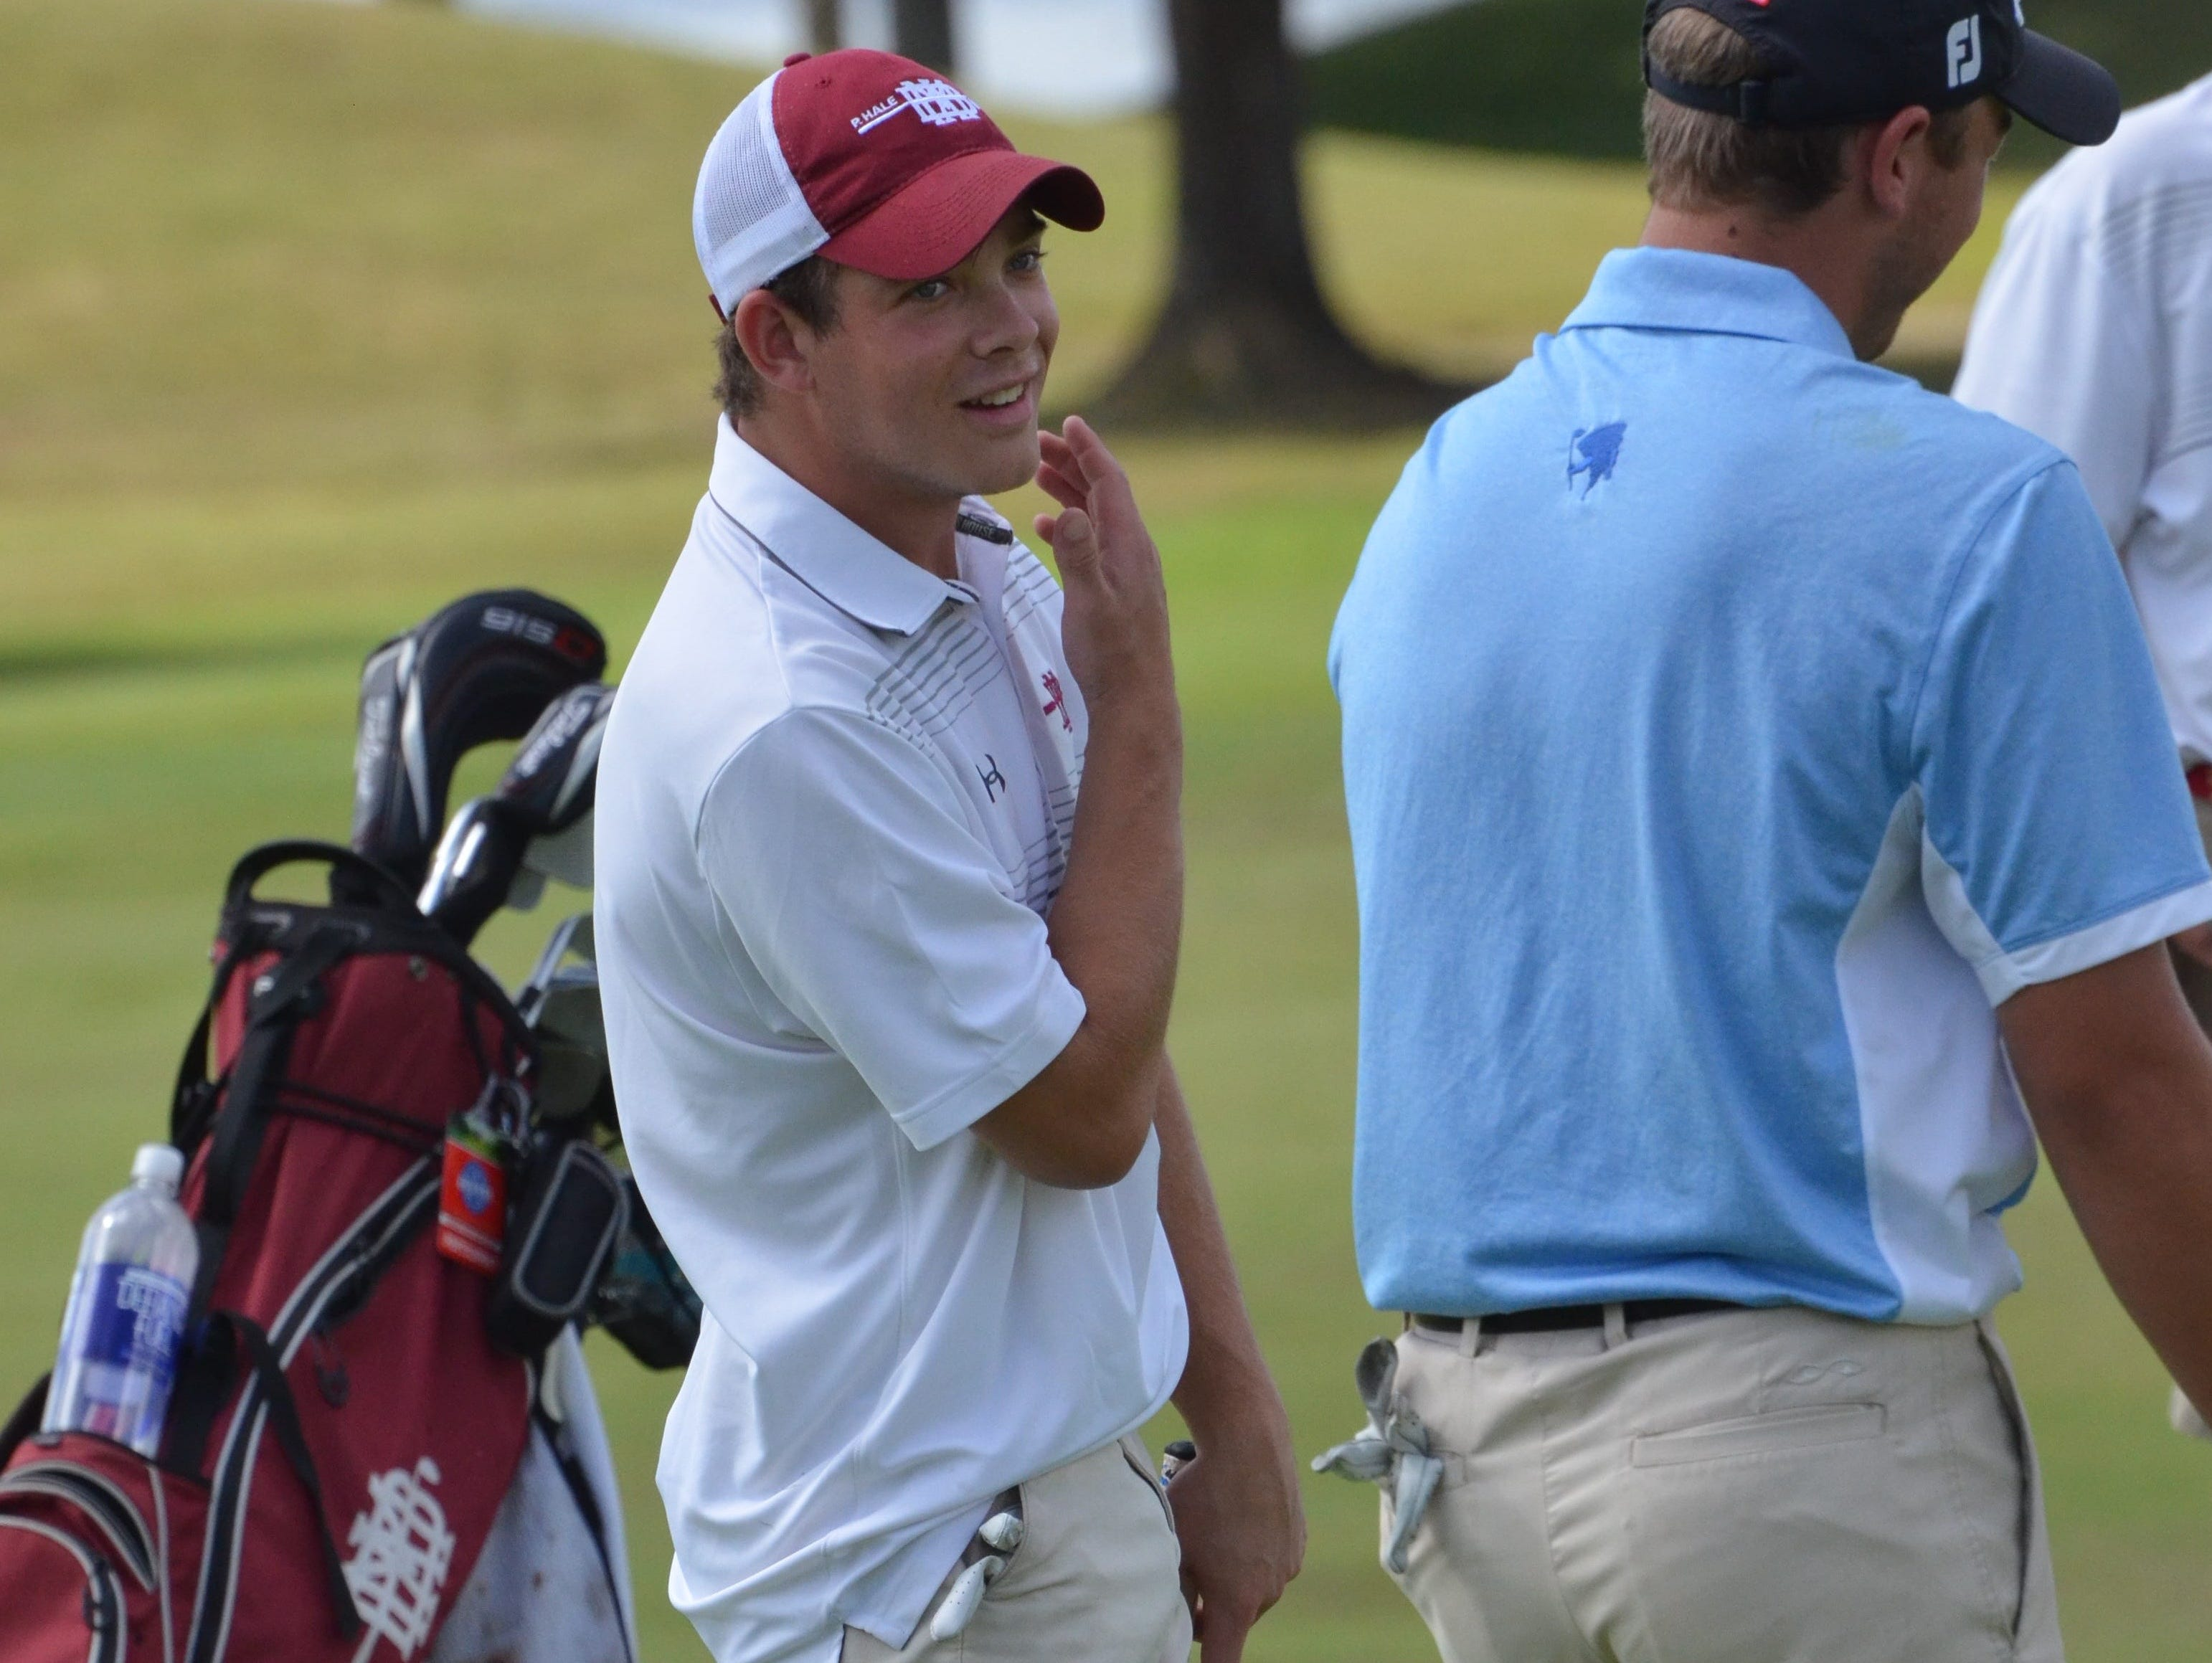 MBA's Connor Downey reacts after narrowly missing a putt on the No. 18.